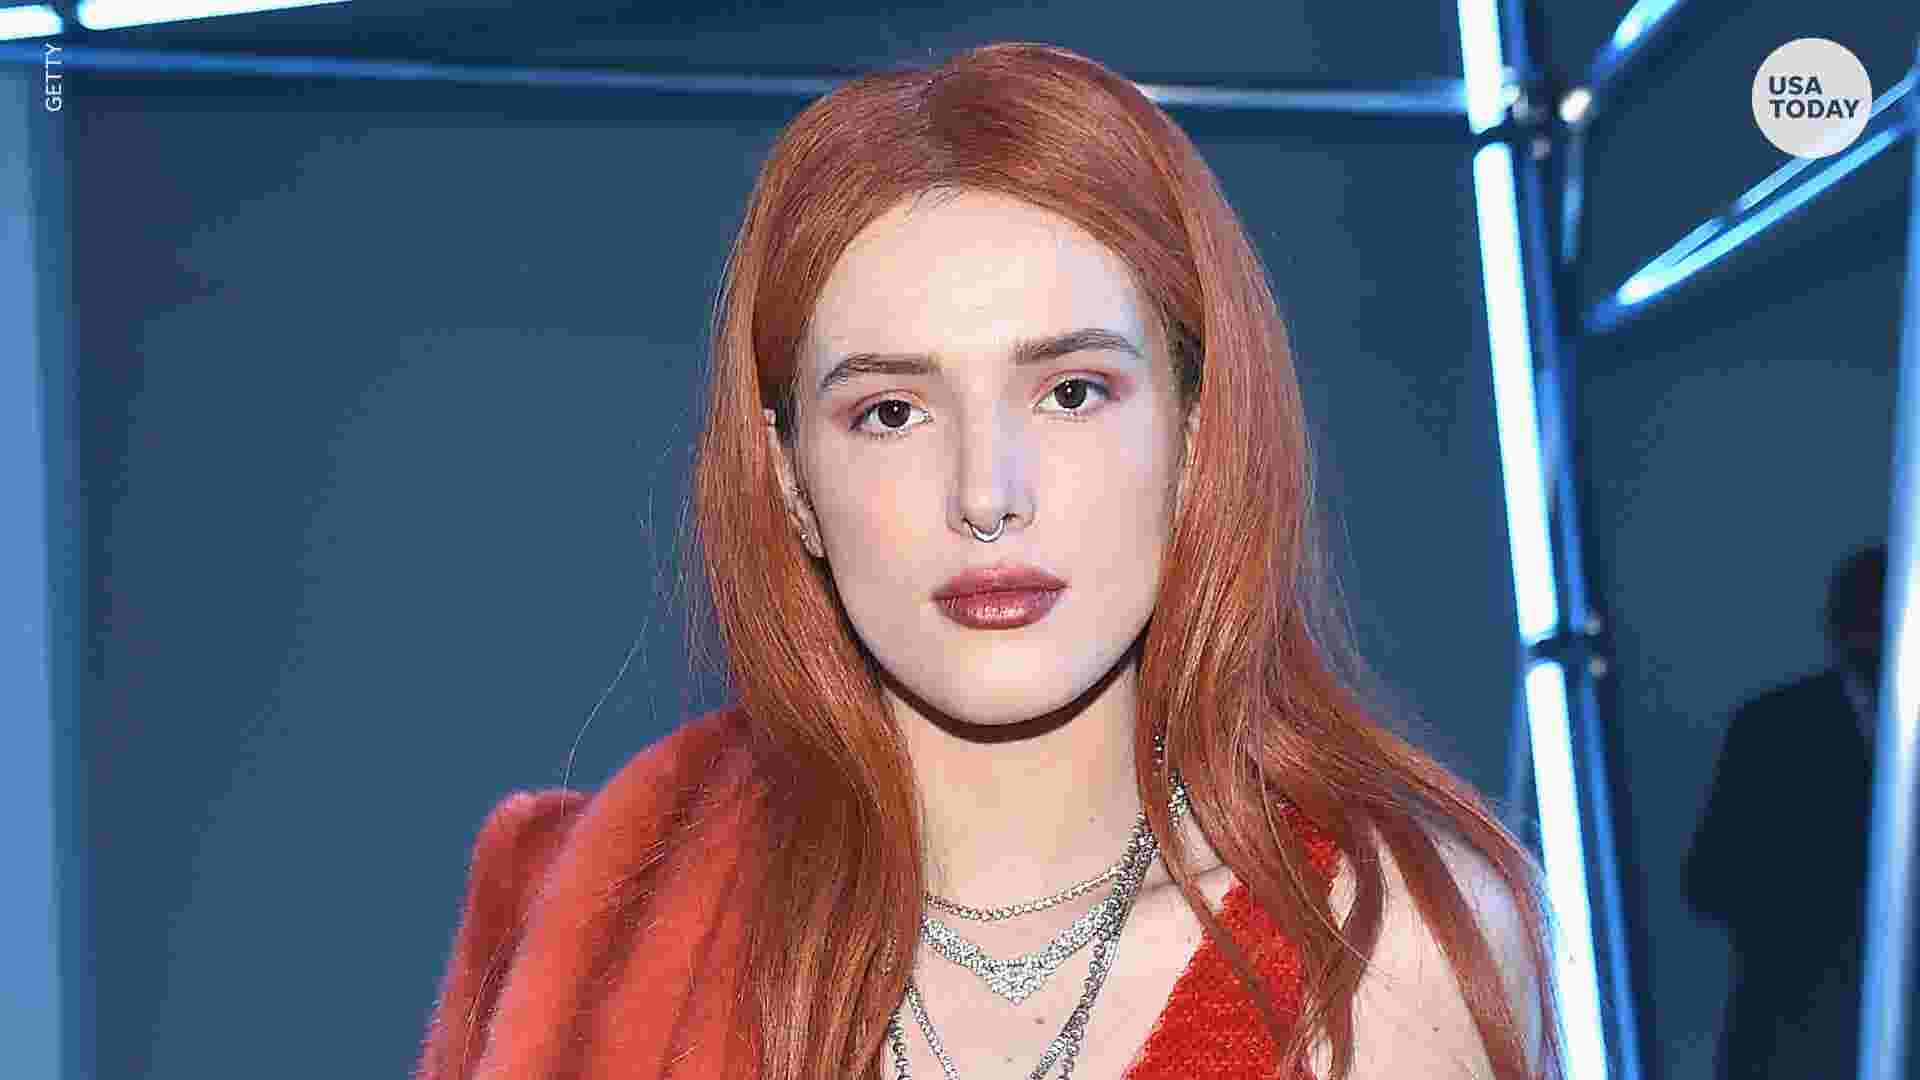 'Shame on you': Bella Thorne is disgusted by Whoopi Goldberg's criticisms